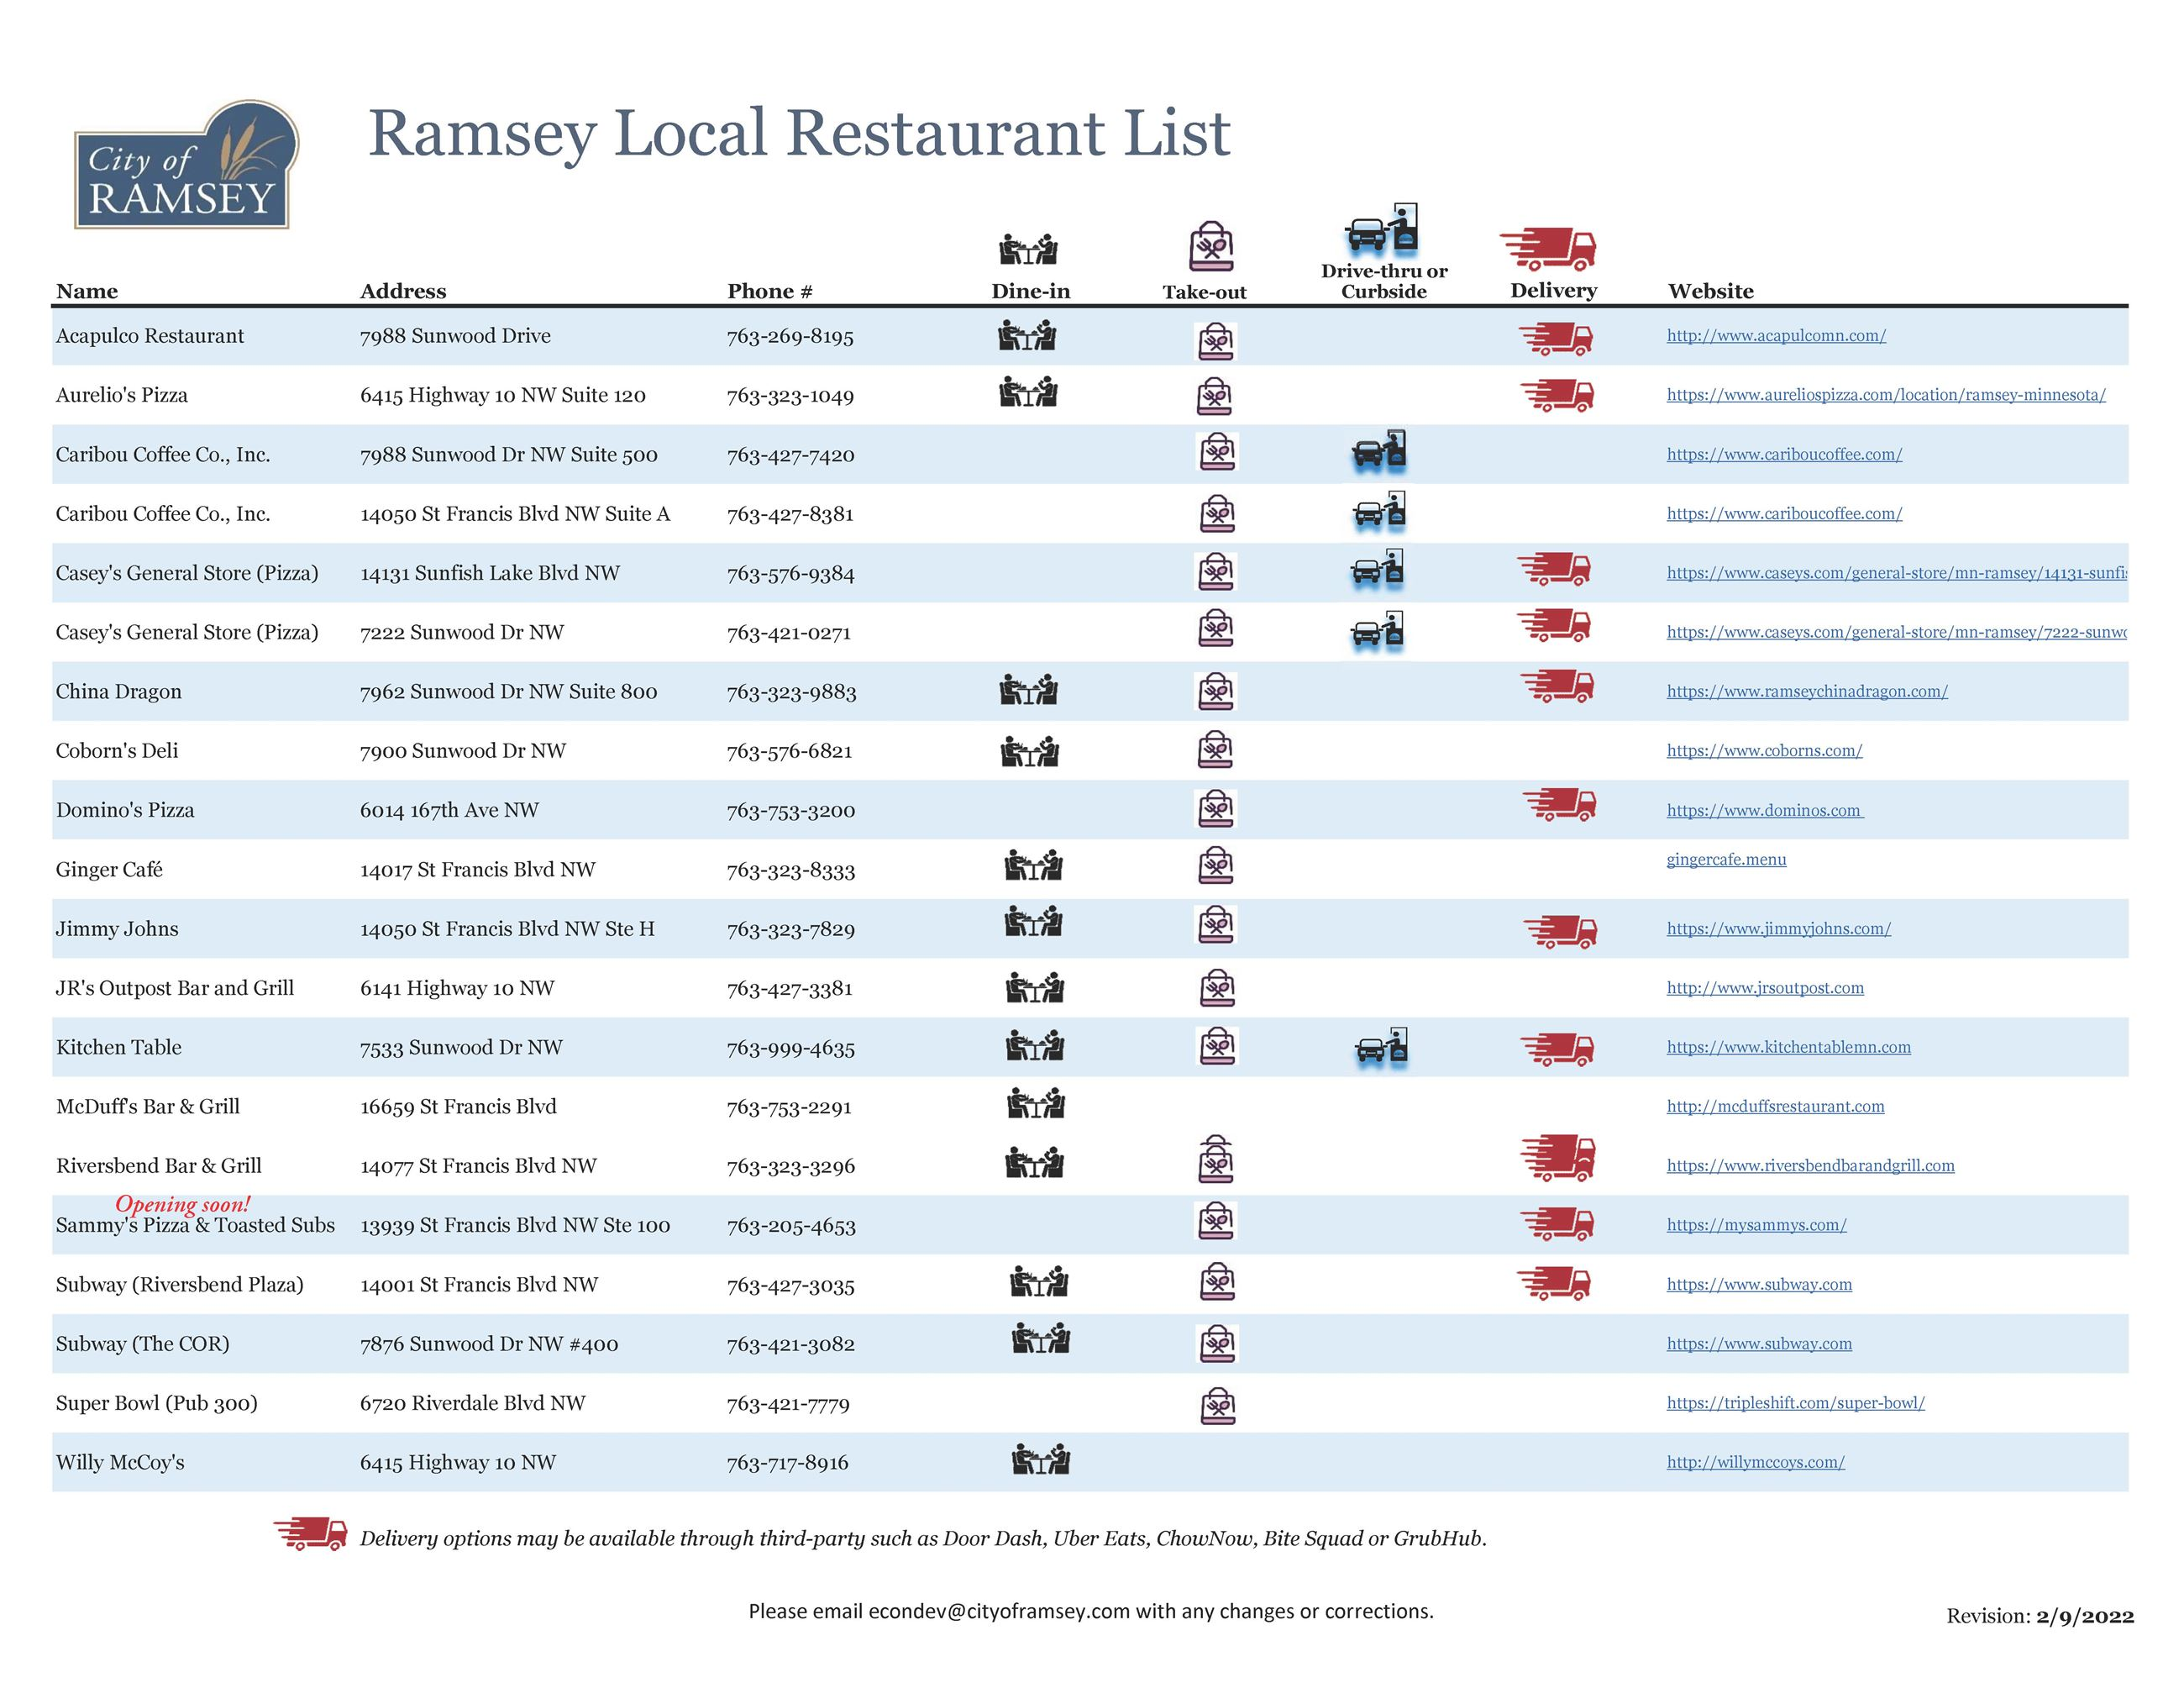 Ramsey Restaurant Guide Graphic Opens in new window